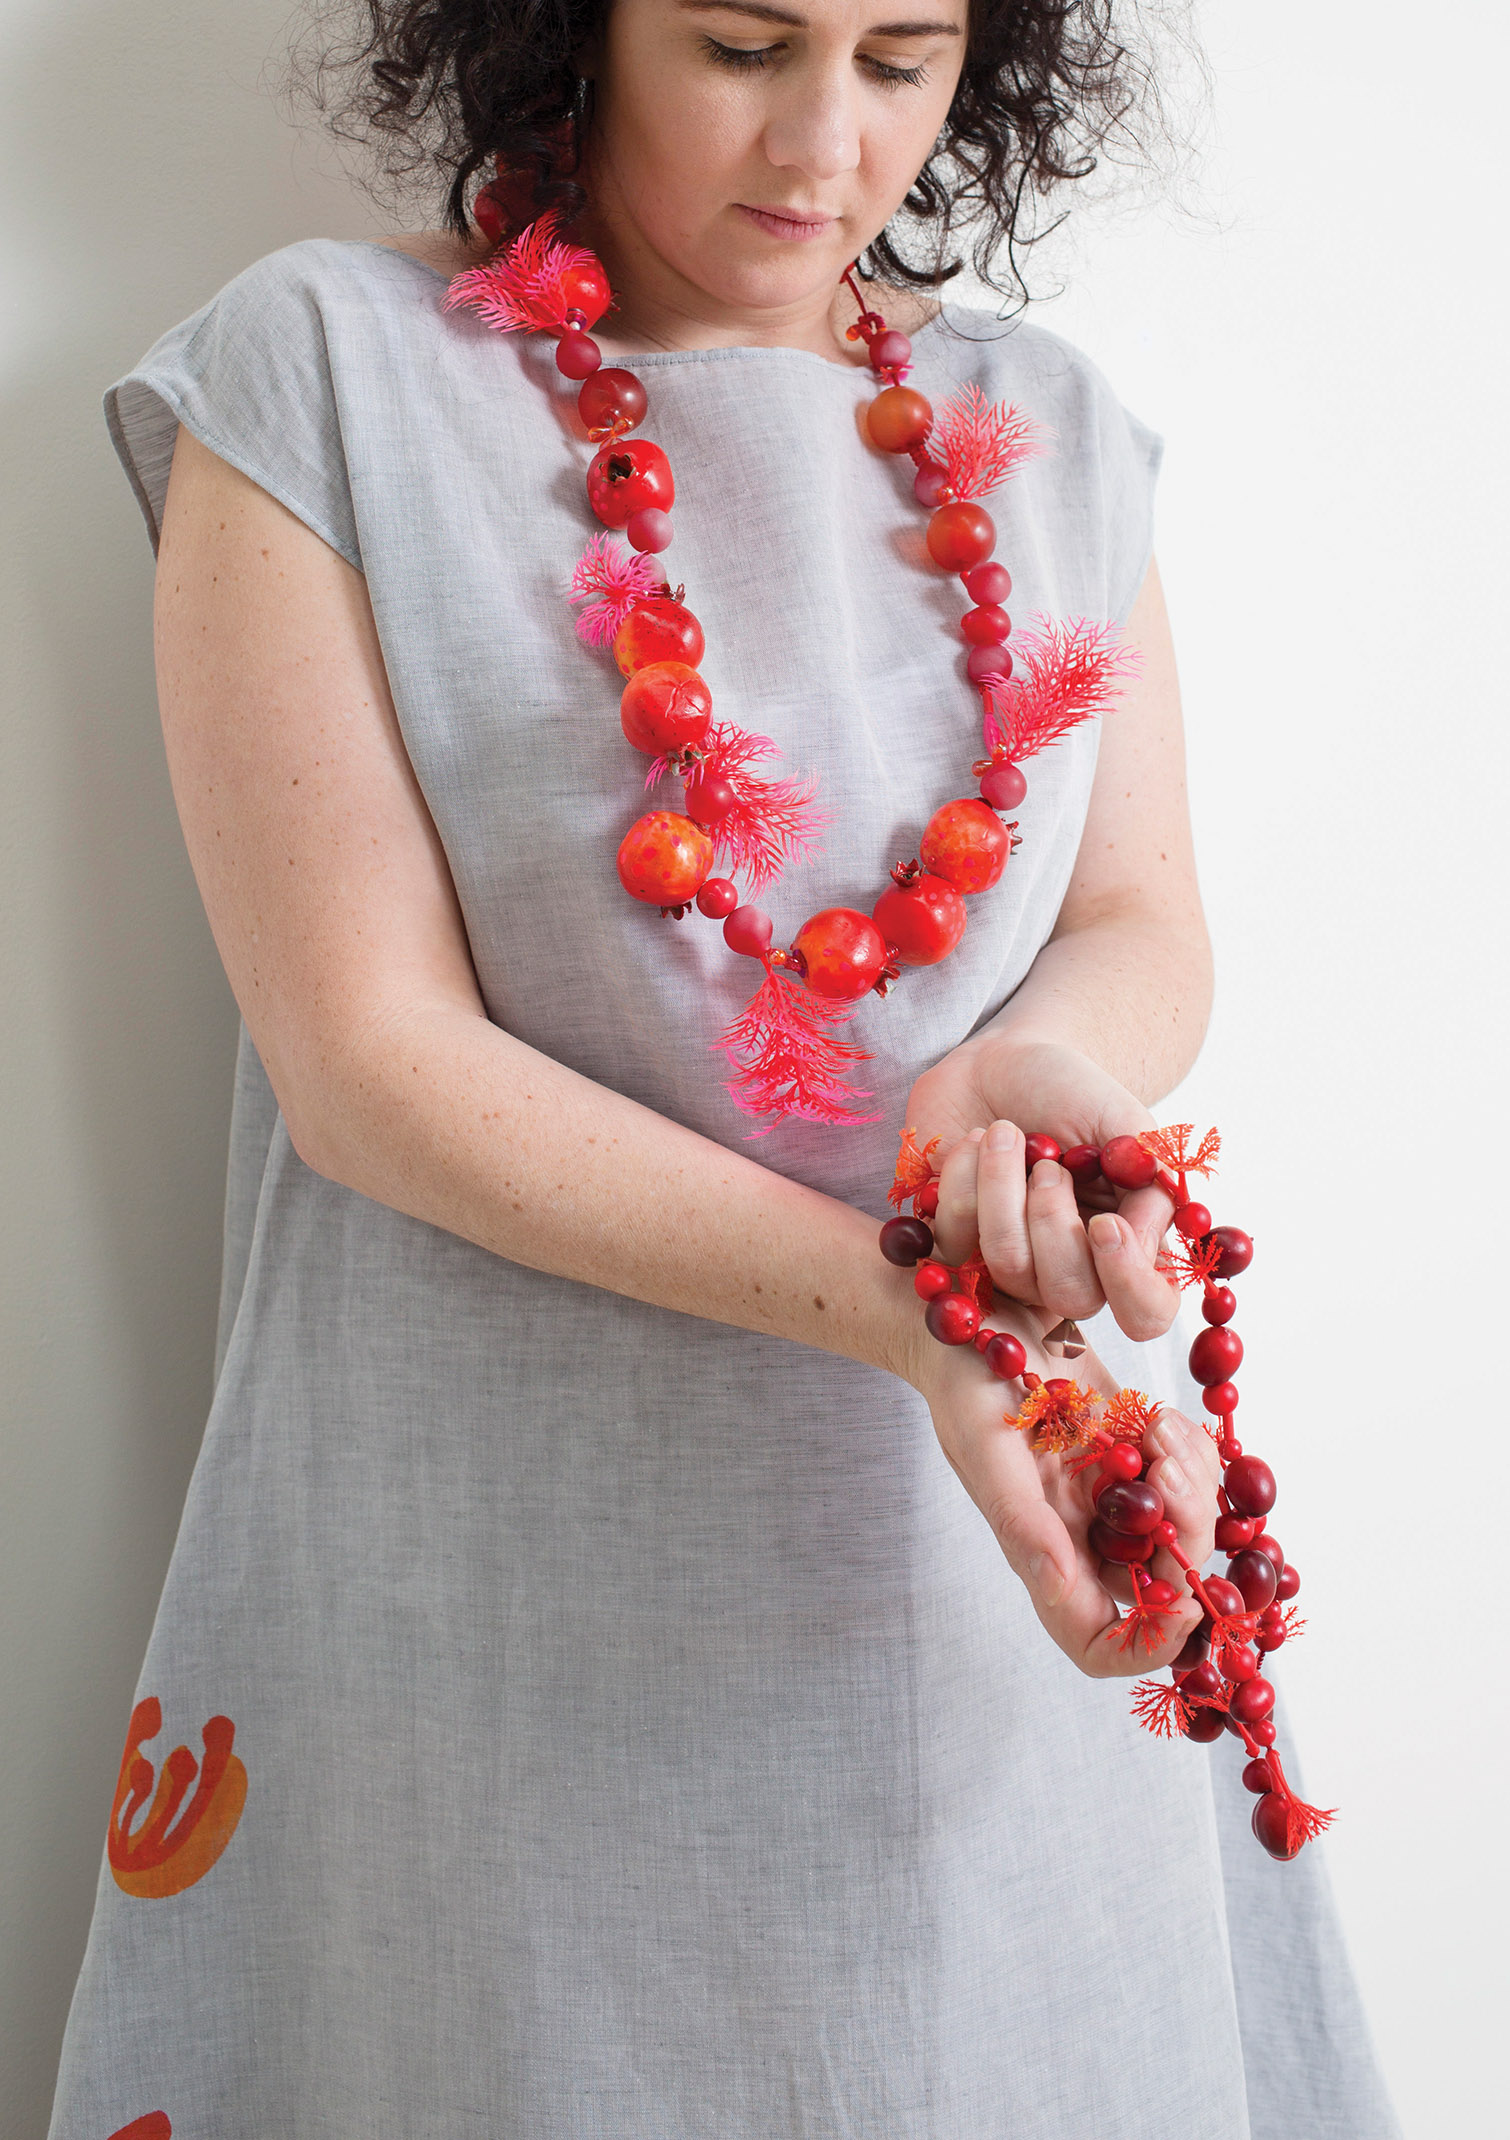 Pomegranate garland  2016, artificial foliage, beads, paint.  Berry garland  (in hands) 2016, Artificial foliage, beads, paint.  Protea dress  2017, long grey linen-cotton with red appliqué, hand cut stencil print, one-off. Photographed by Craig Arnold